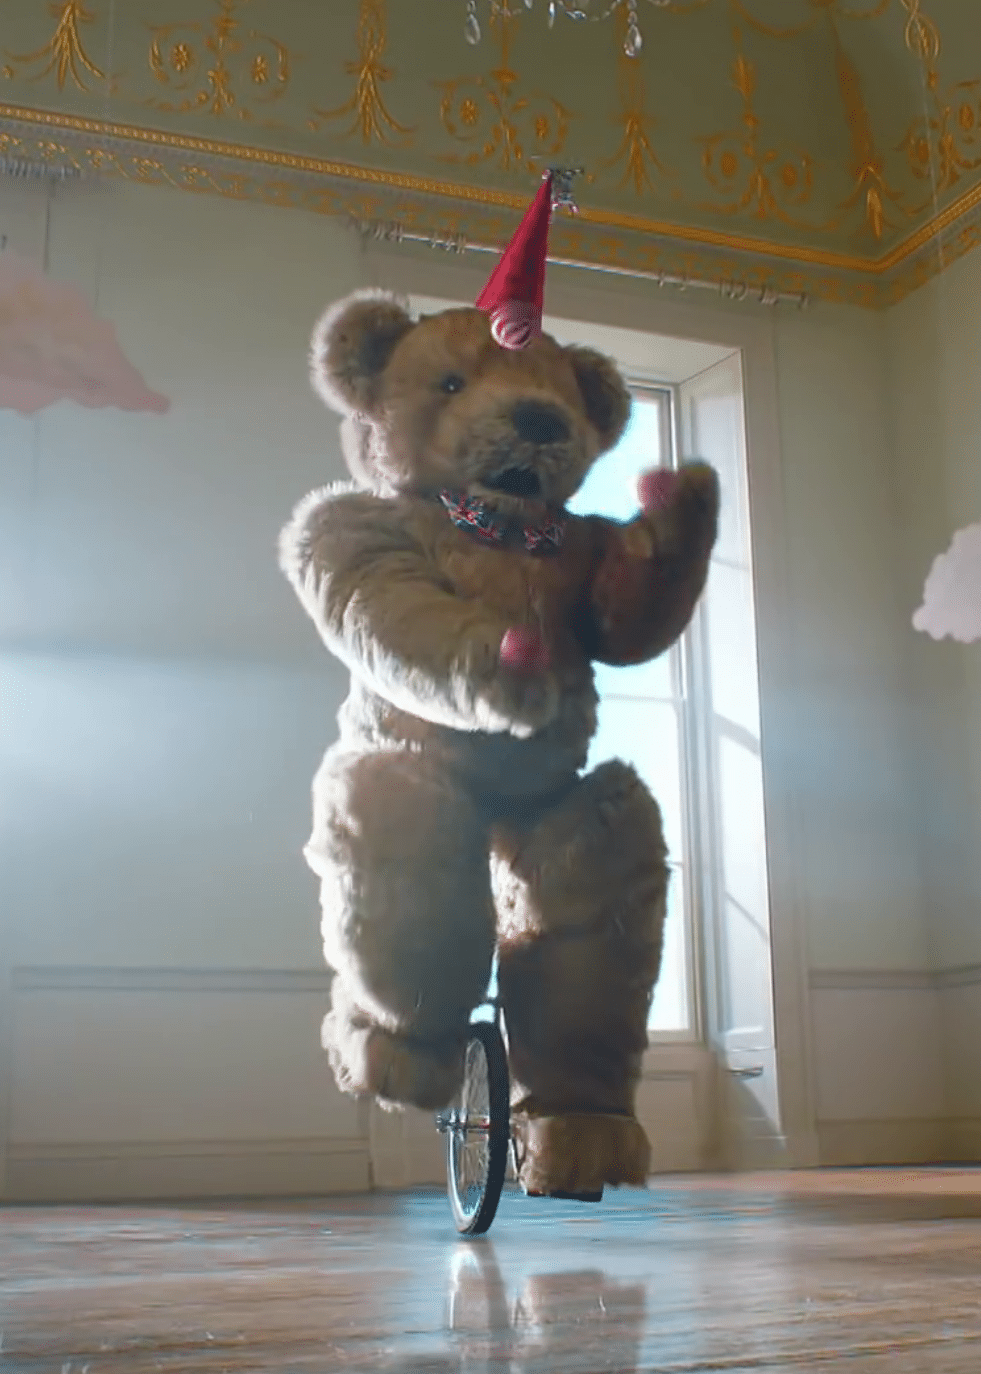 Bentley the Bear riding a unicycle as seen in the 2016 Britain's Got Talent Promo Character mascot costume teddy bear